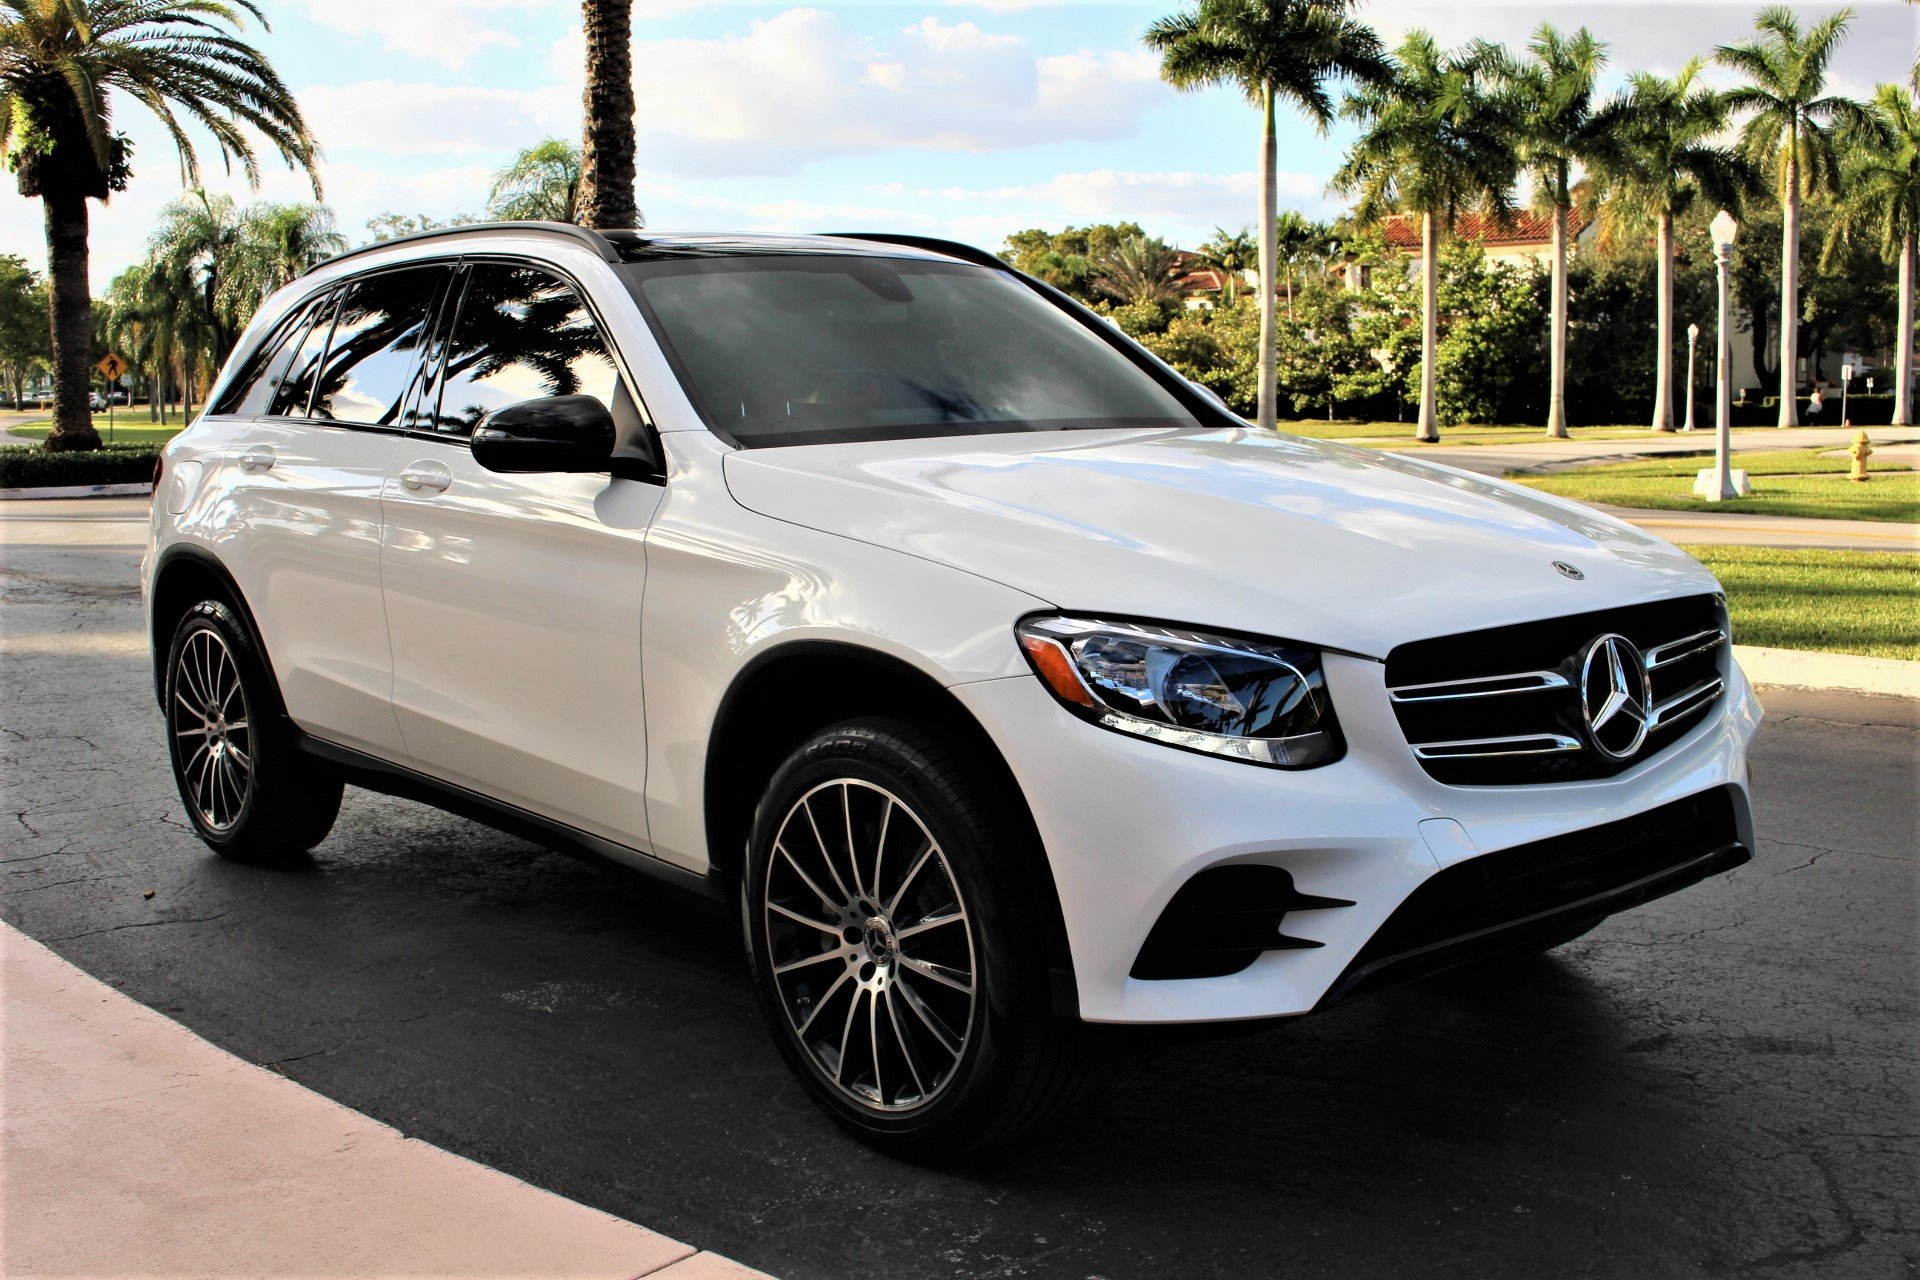 Used 2019 Mercedes-Benz GLC GLC 300 for sale Sold at The Gables Sports Cars in Miami FL 33146 3